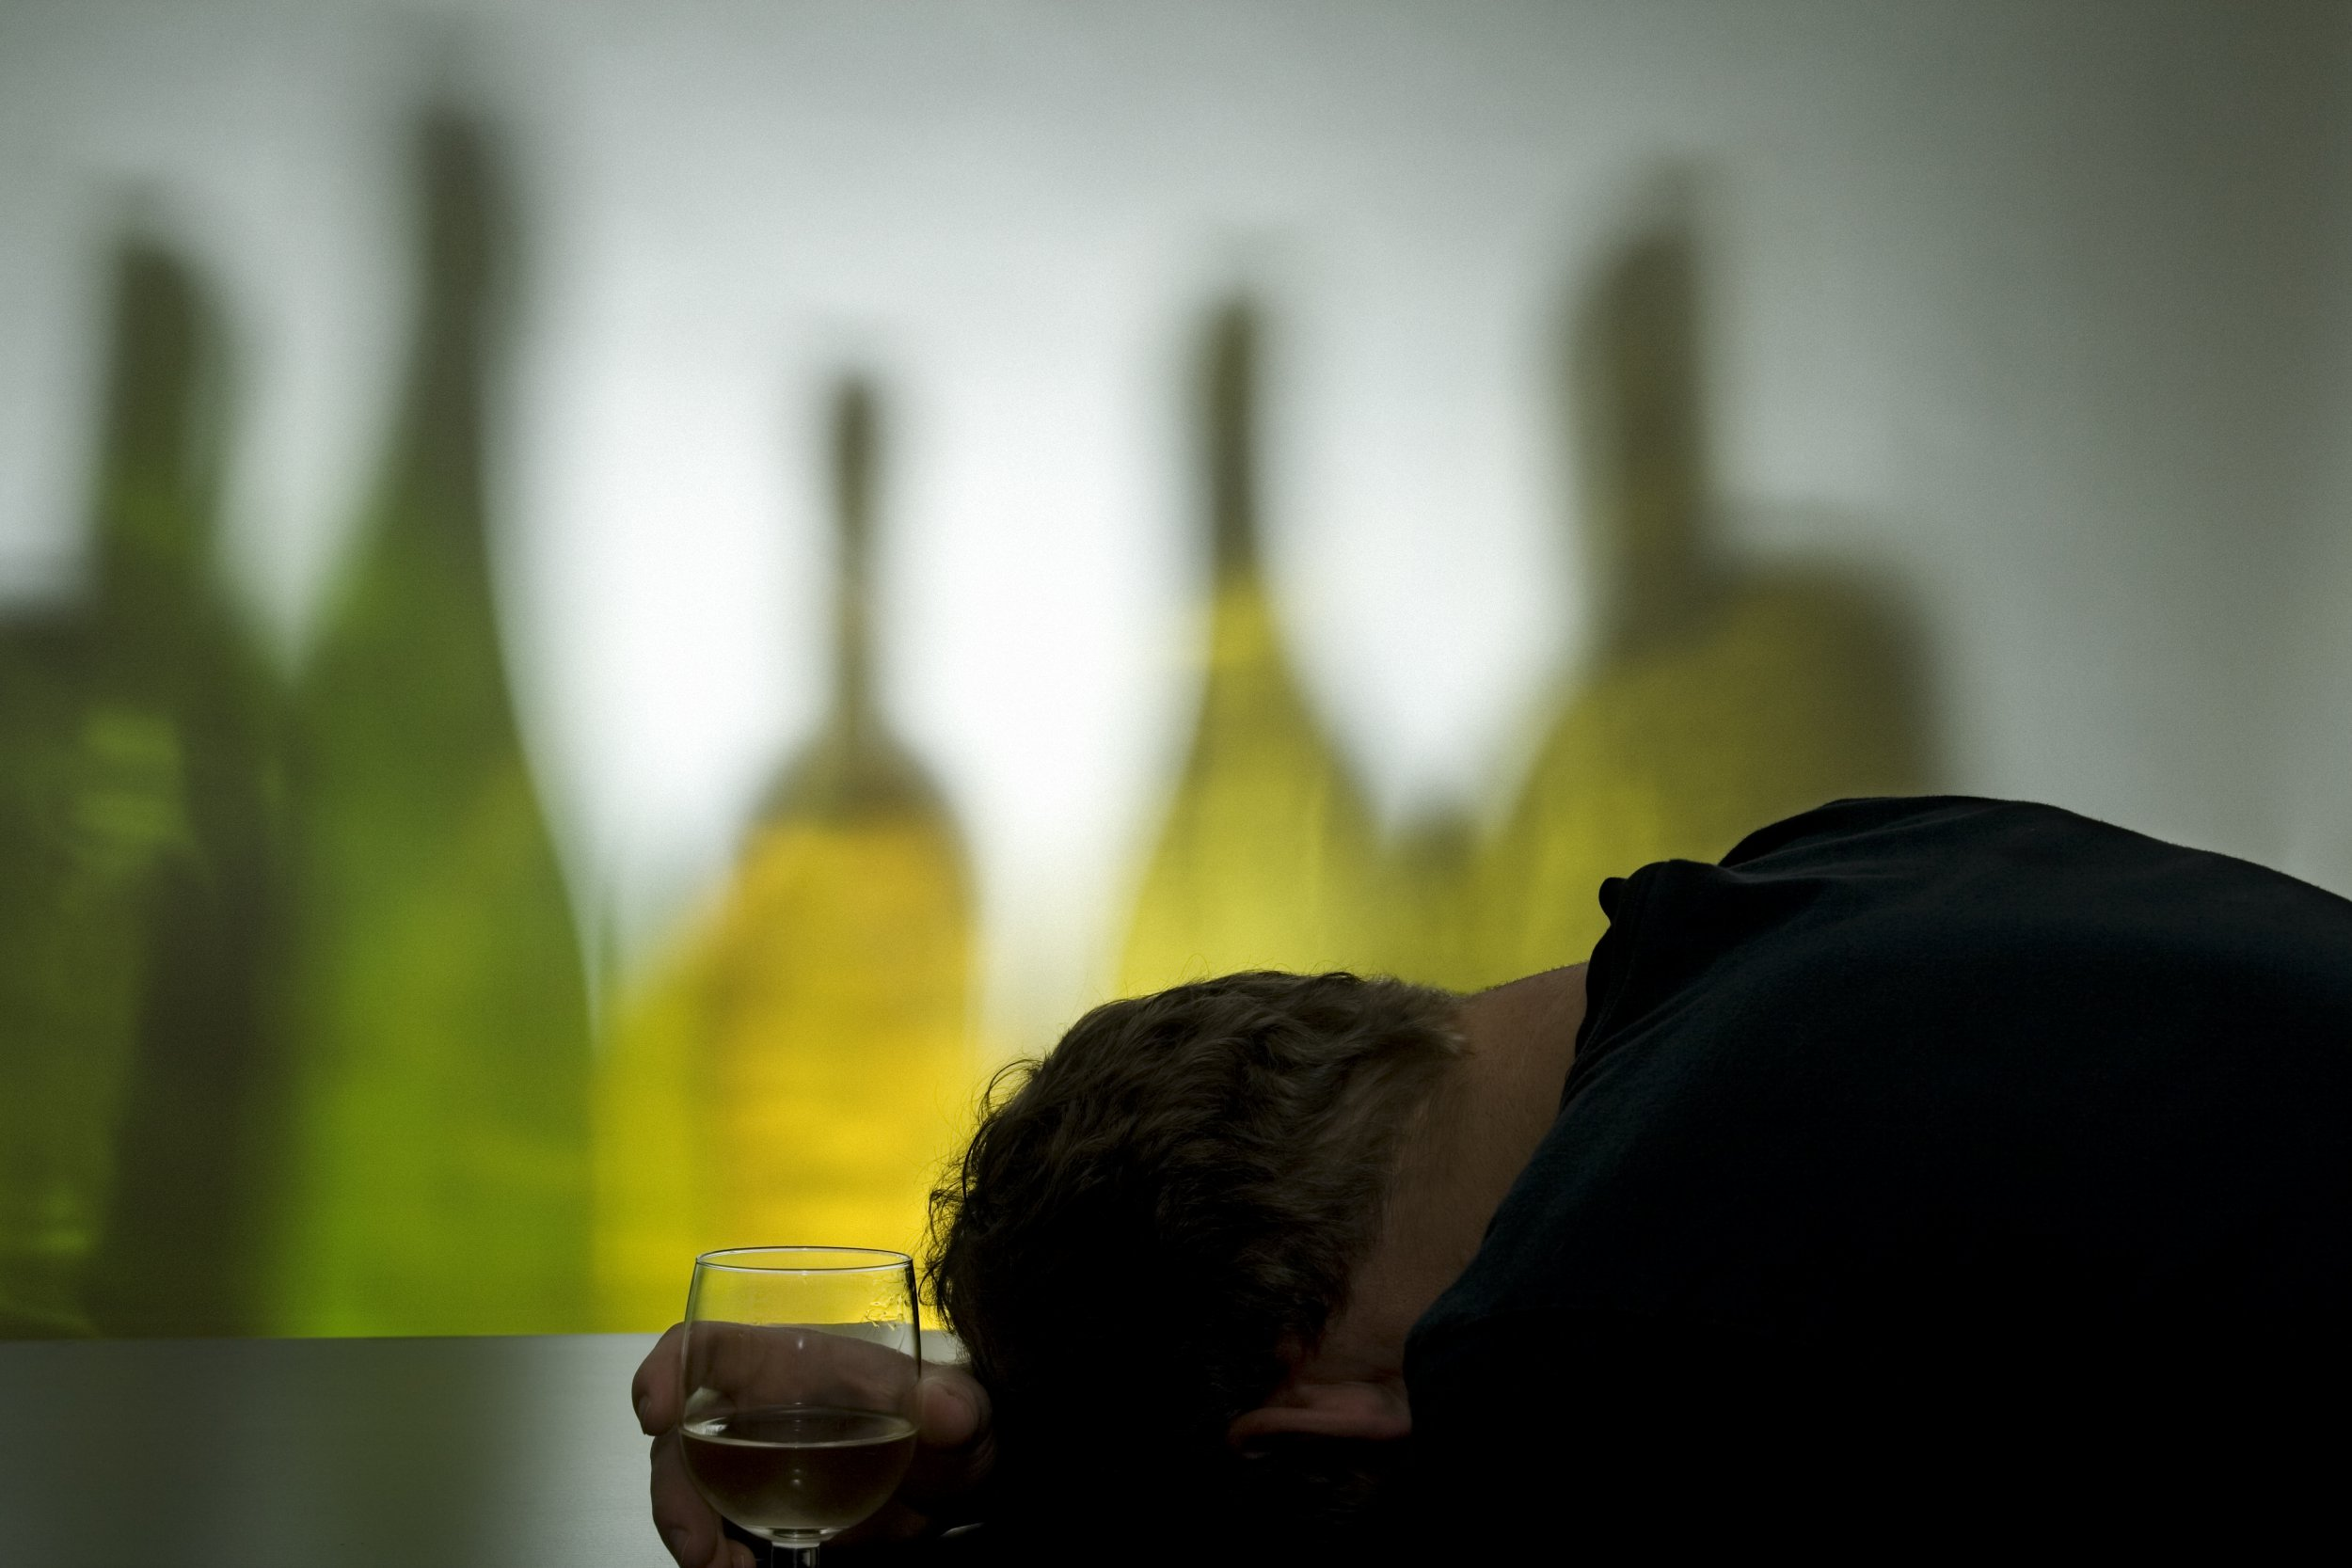 Man passed out in front of wine bottles. (Light is reflected through the bottles. Noise in background.)